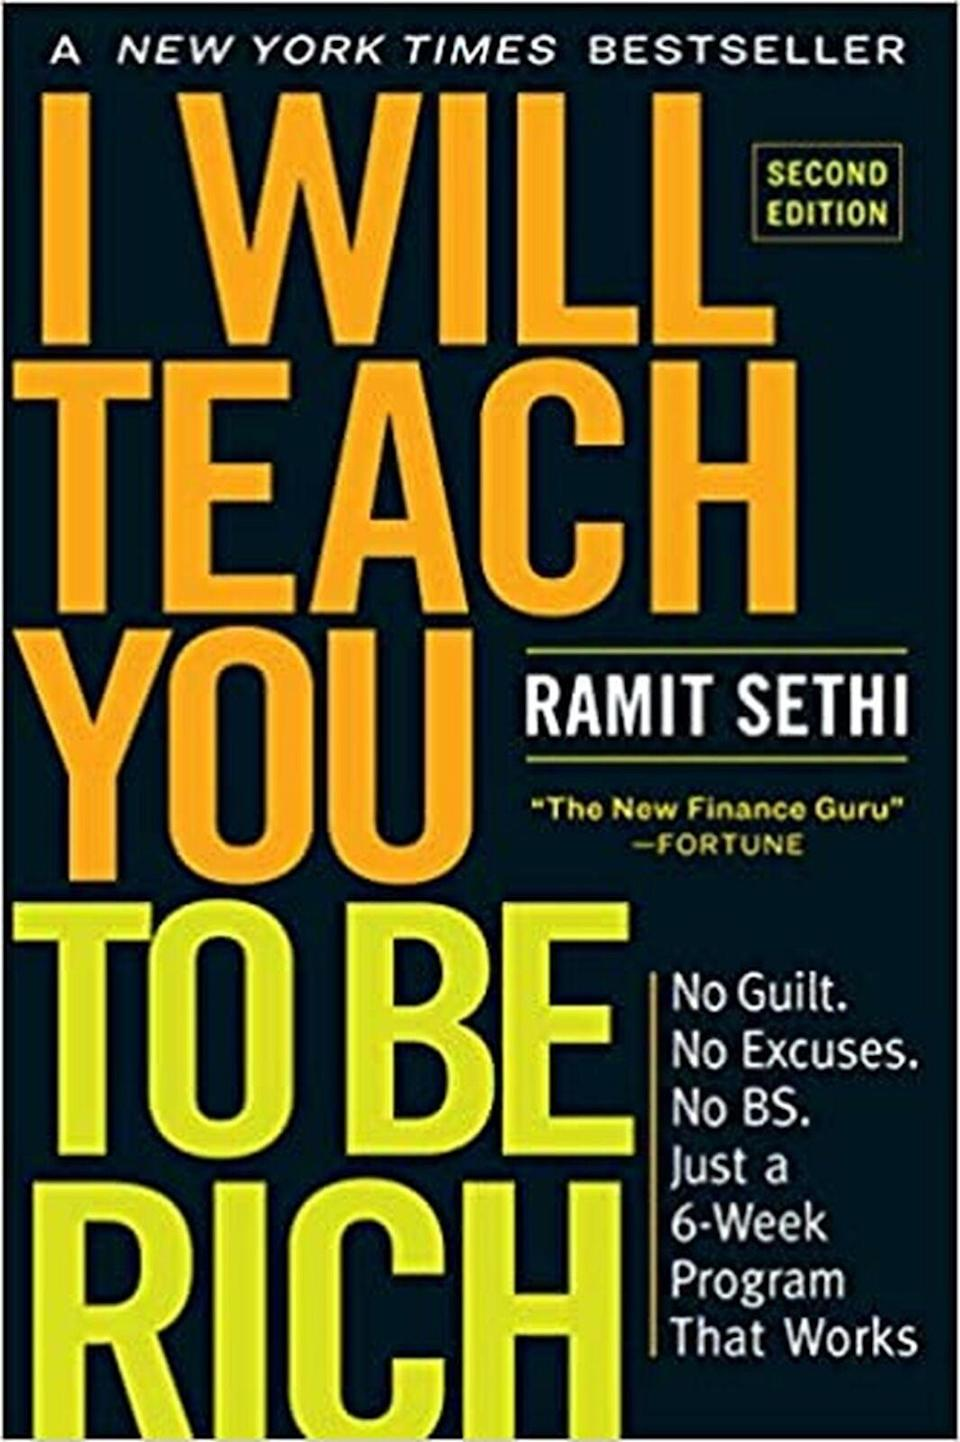 <p>Remember when every finance publication stated that milennials are not as well off because we spend too much on avocado toast and Starbucks? Well, Ramit Sethi says that's bullsh*t. We can have our cake and eat it too but with certain strategies in place. <span><b>I Will Teach You to Be Rich</b></span> ($9) is literally that. It even has word-for-word scripts on how to talk your way out of late fees.</p>